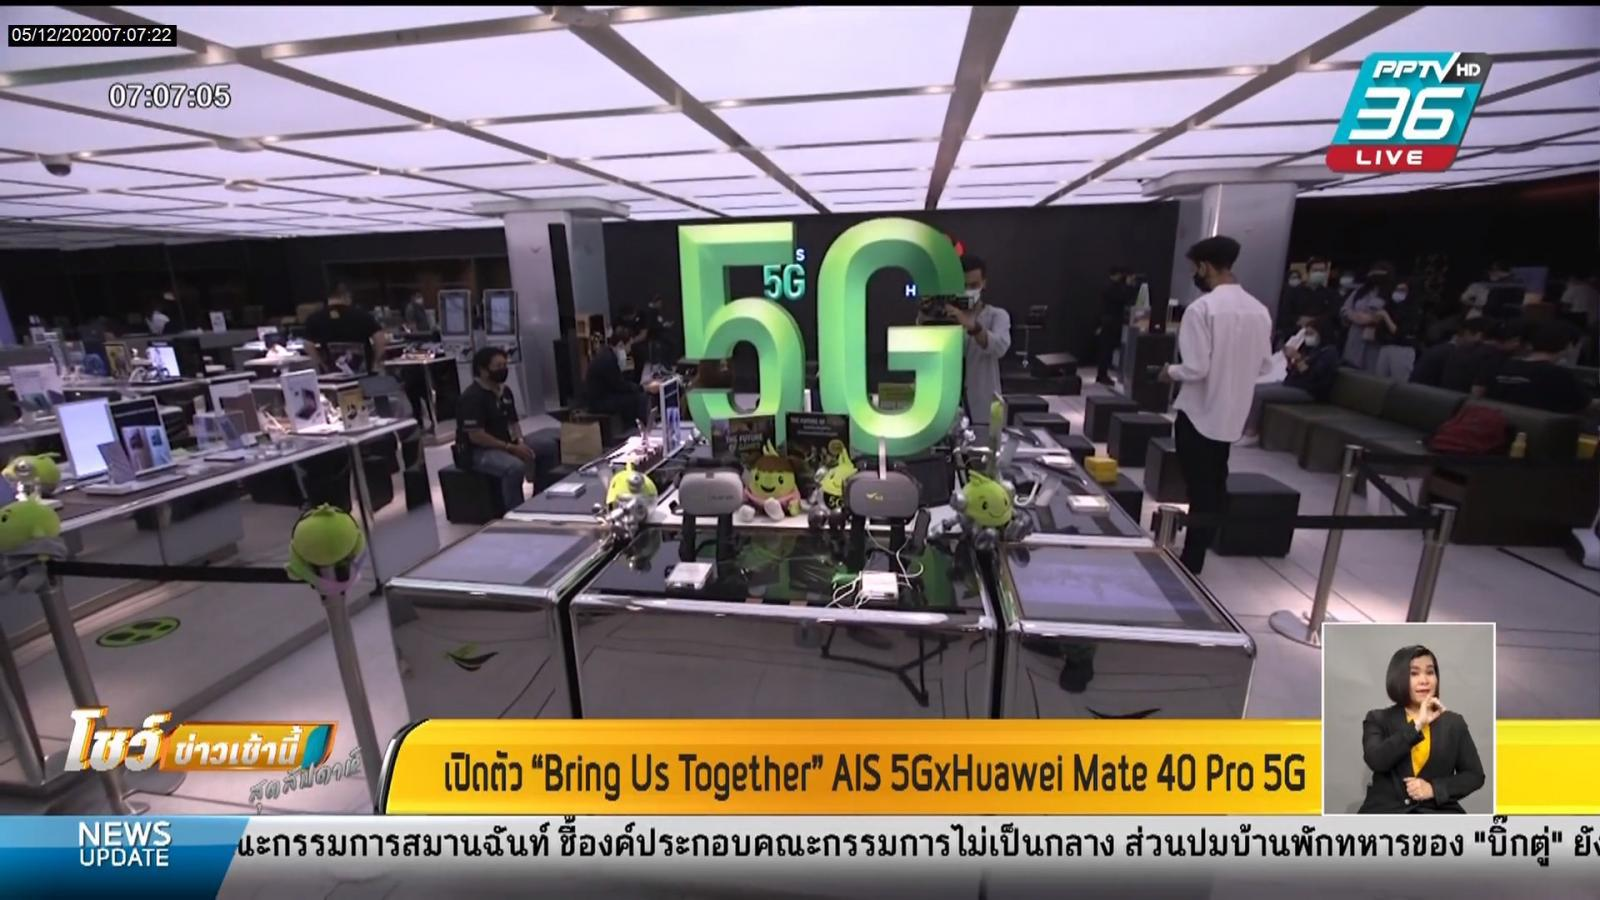 Bring Us Together AIS 5G x Huawei Mate 40 Pro 5G